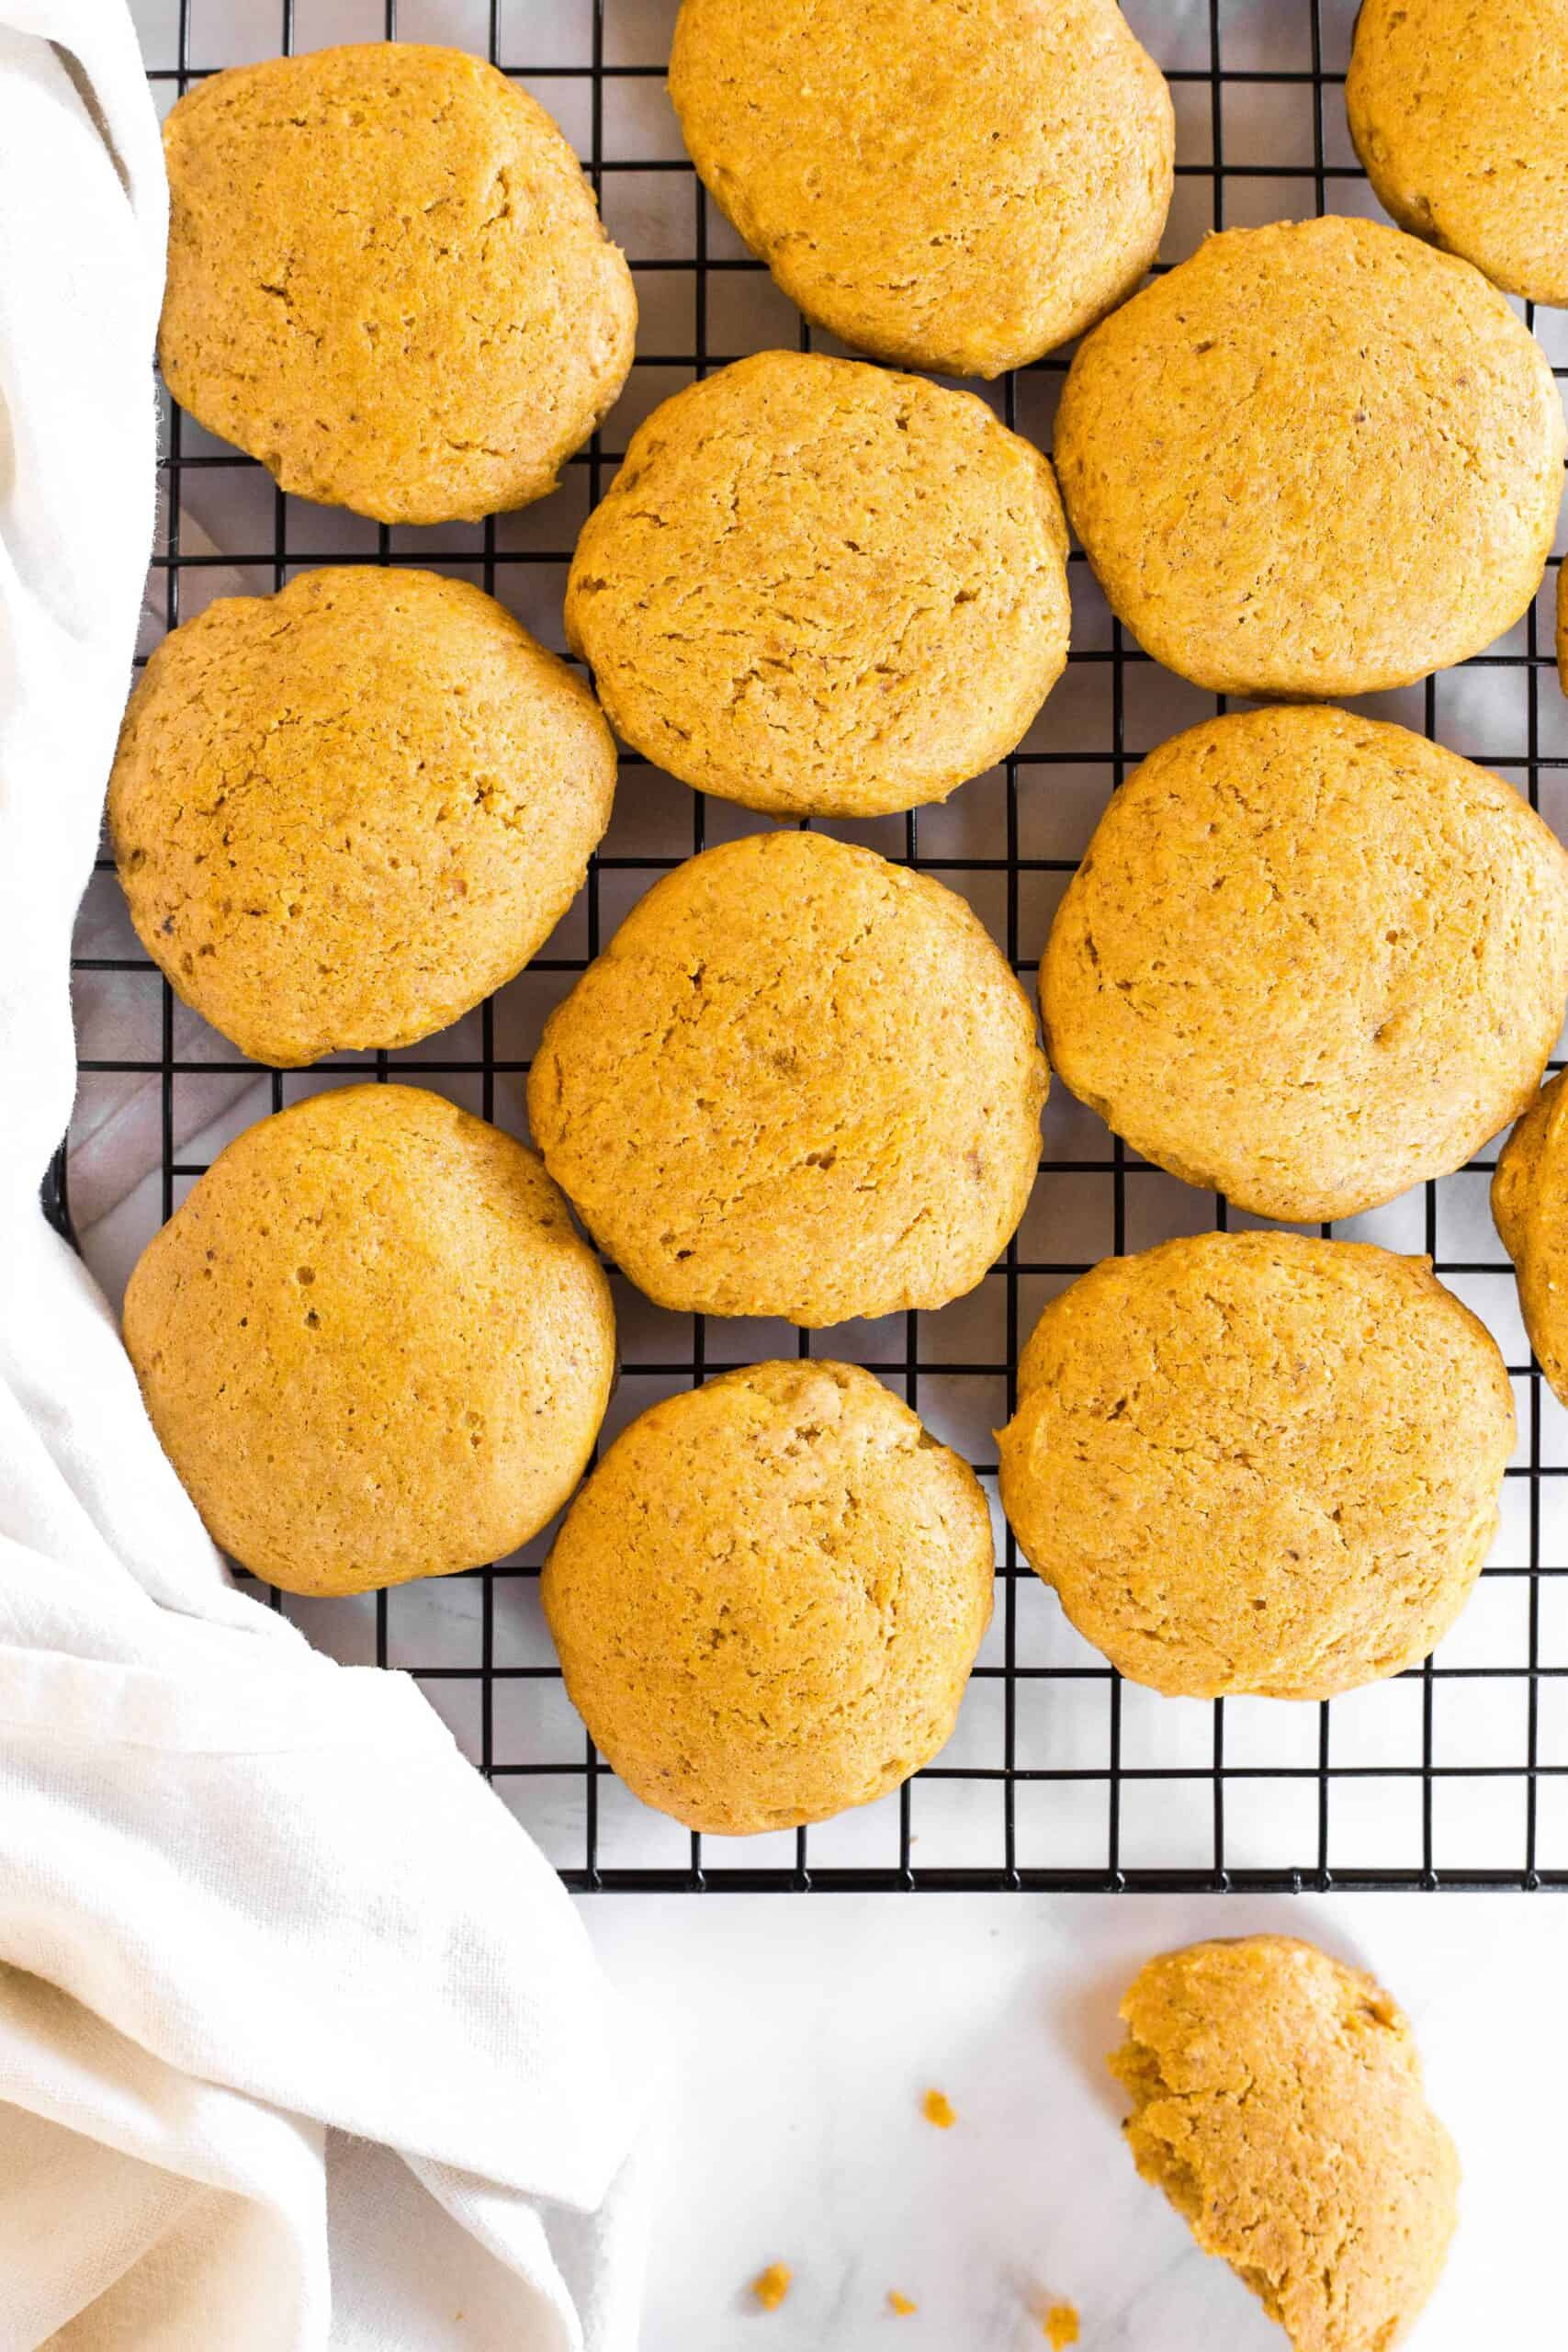 Soft pumpkin cookies cooling on a wire rack.